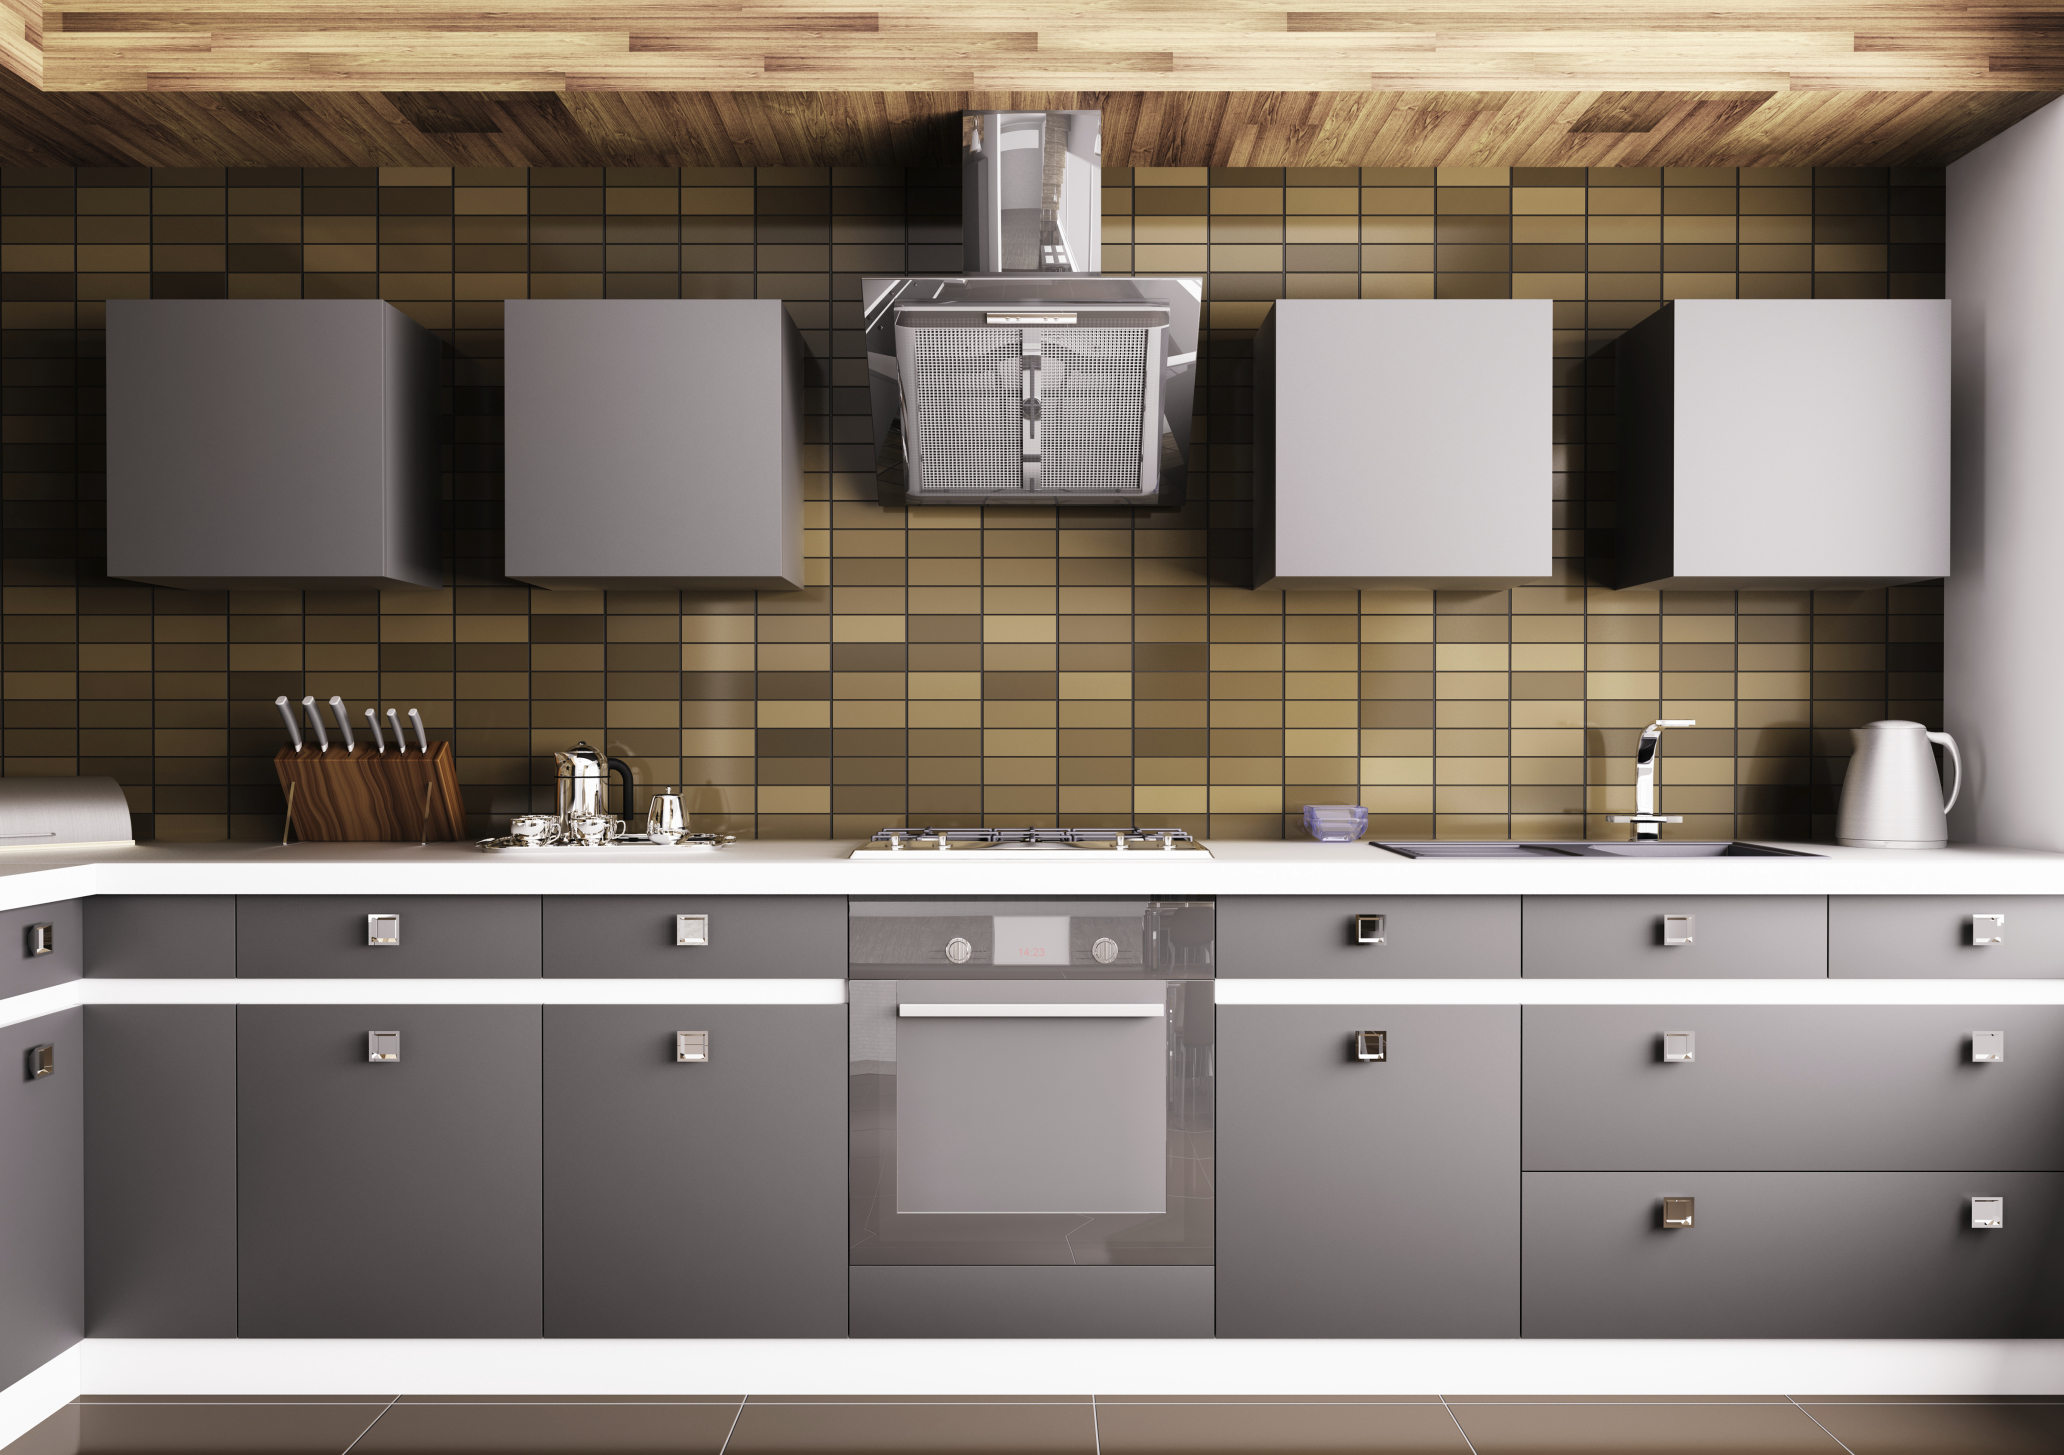 Give Your Cabinets A Brand-New Facelift